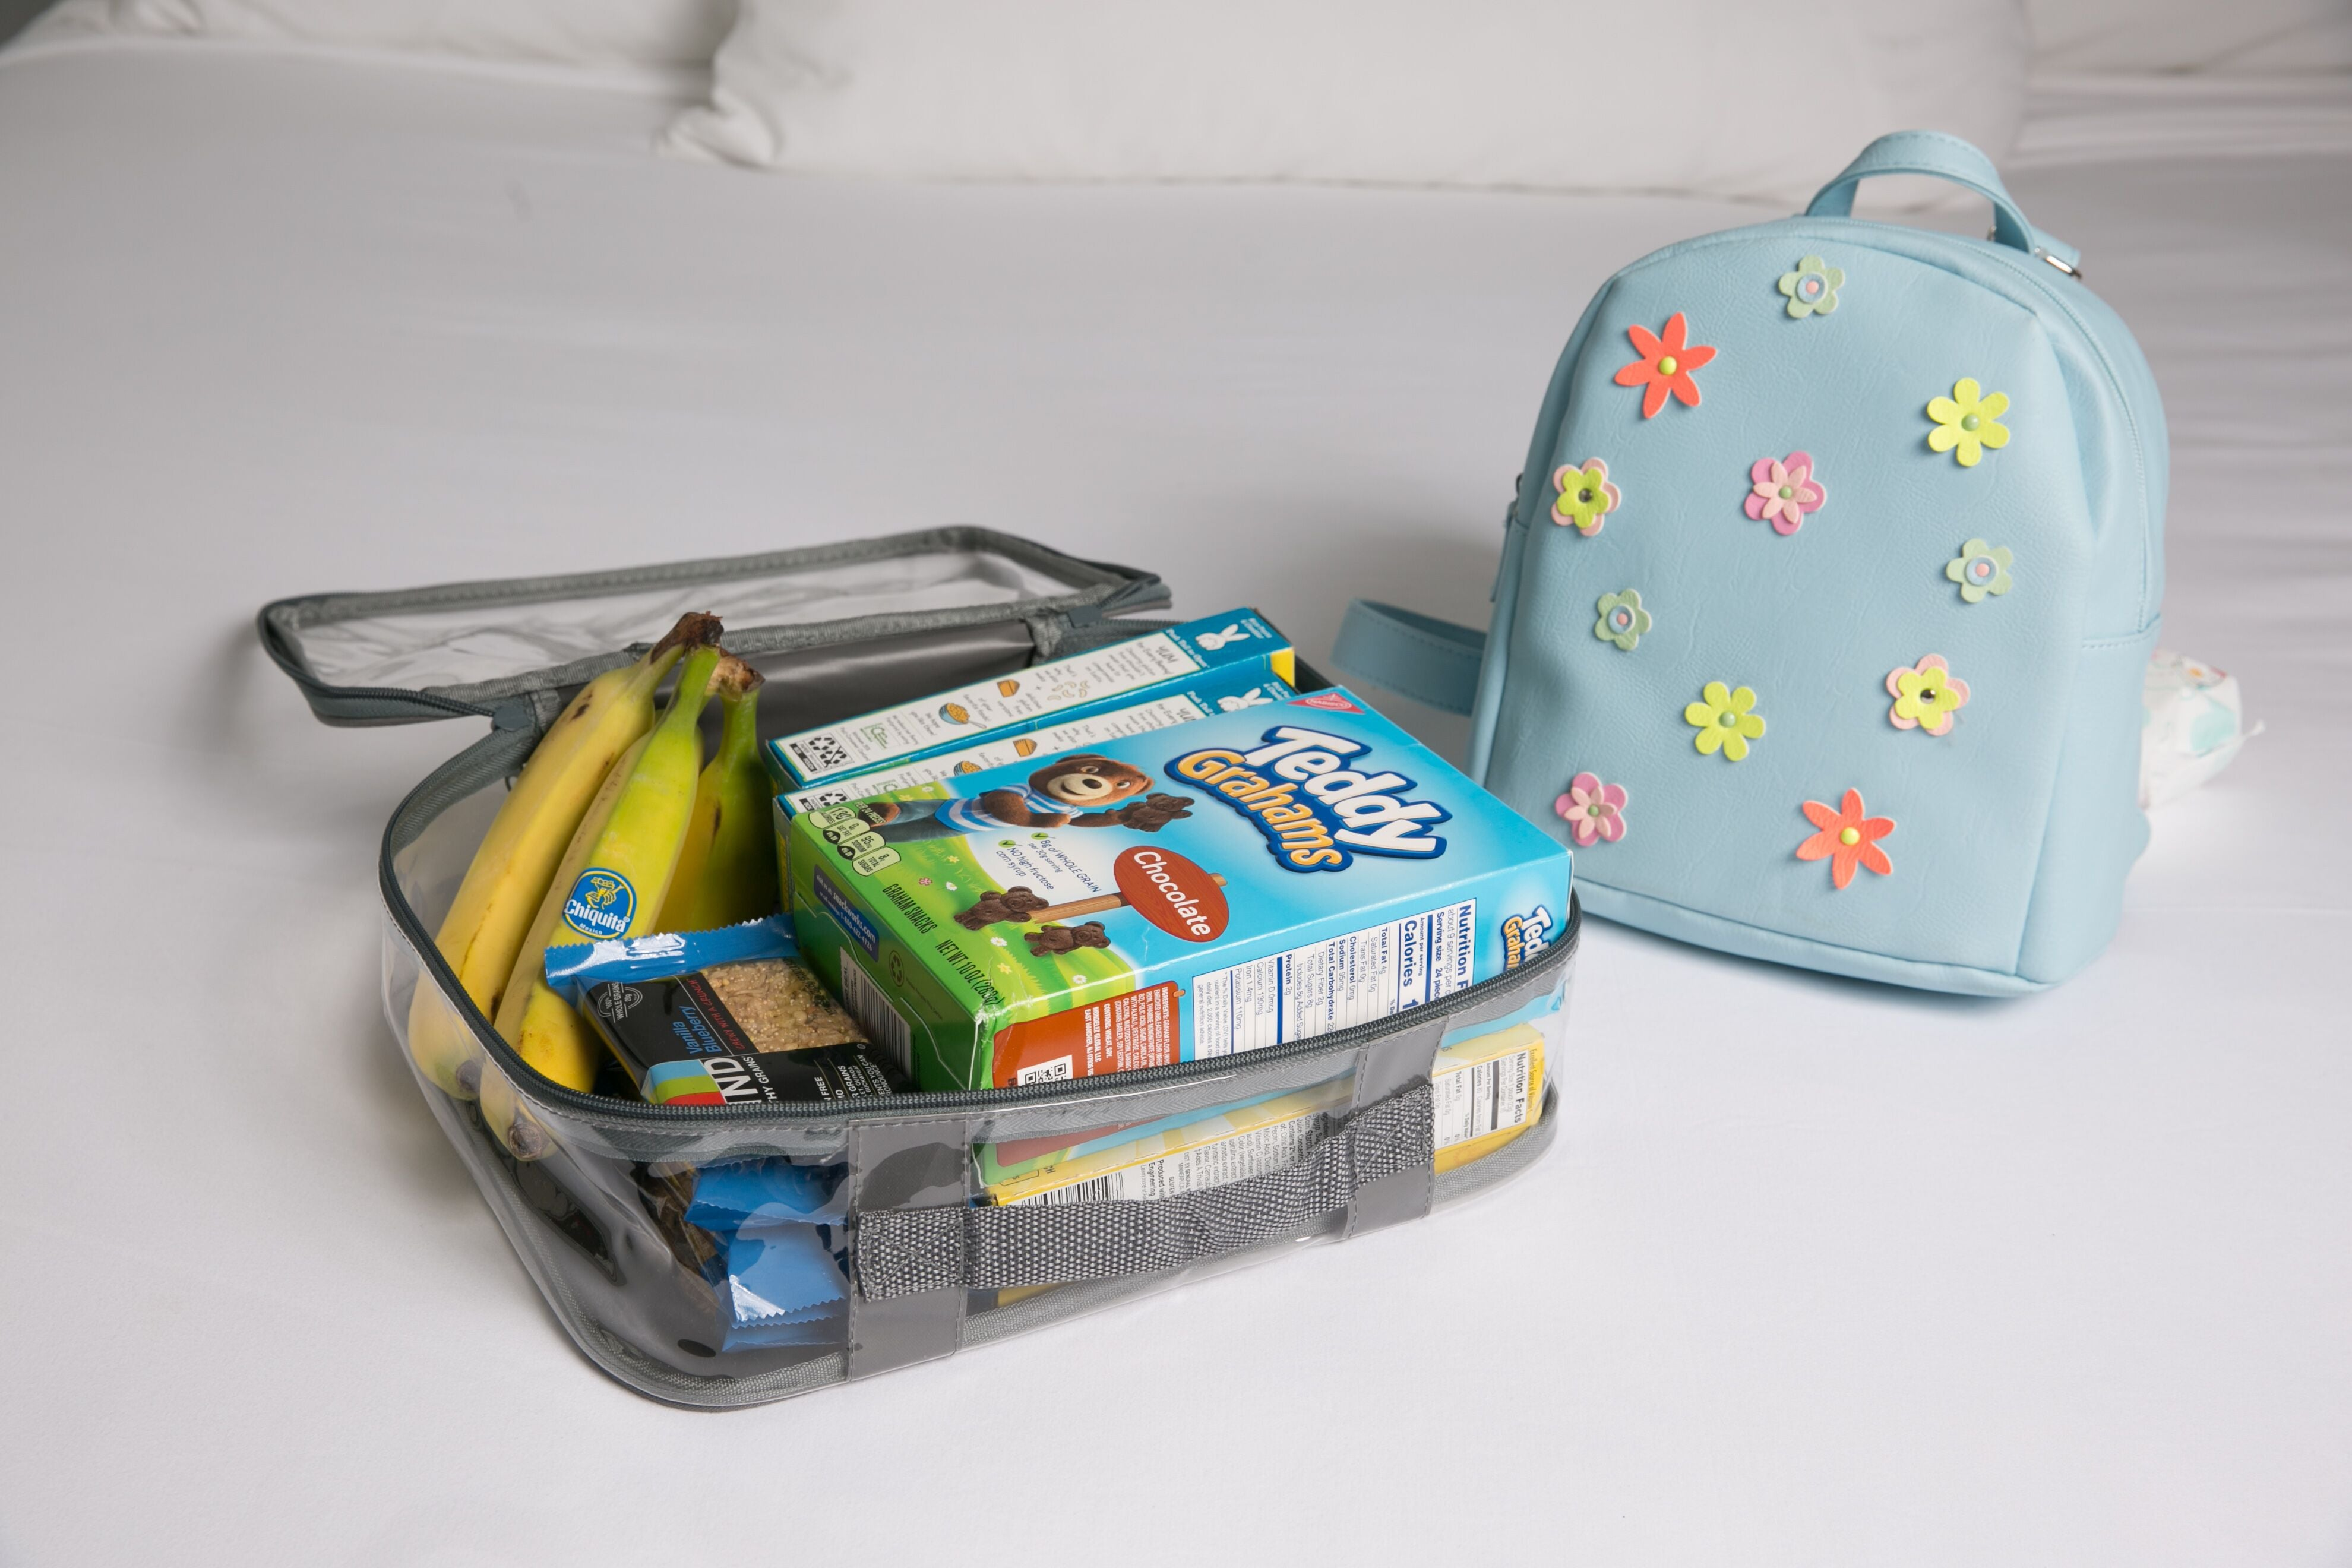 Kids snacks for backpacking trip in a clear packing cube